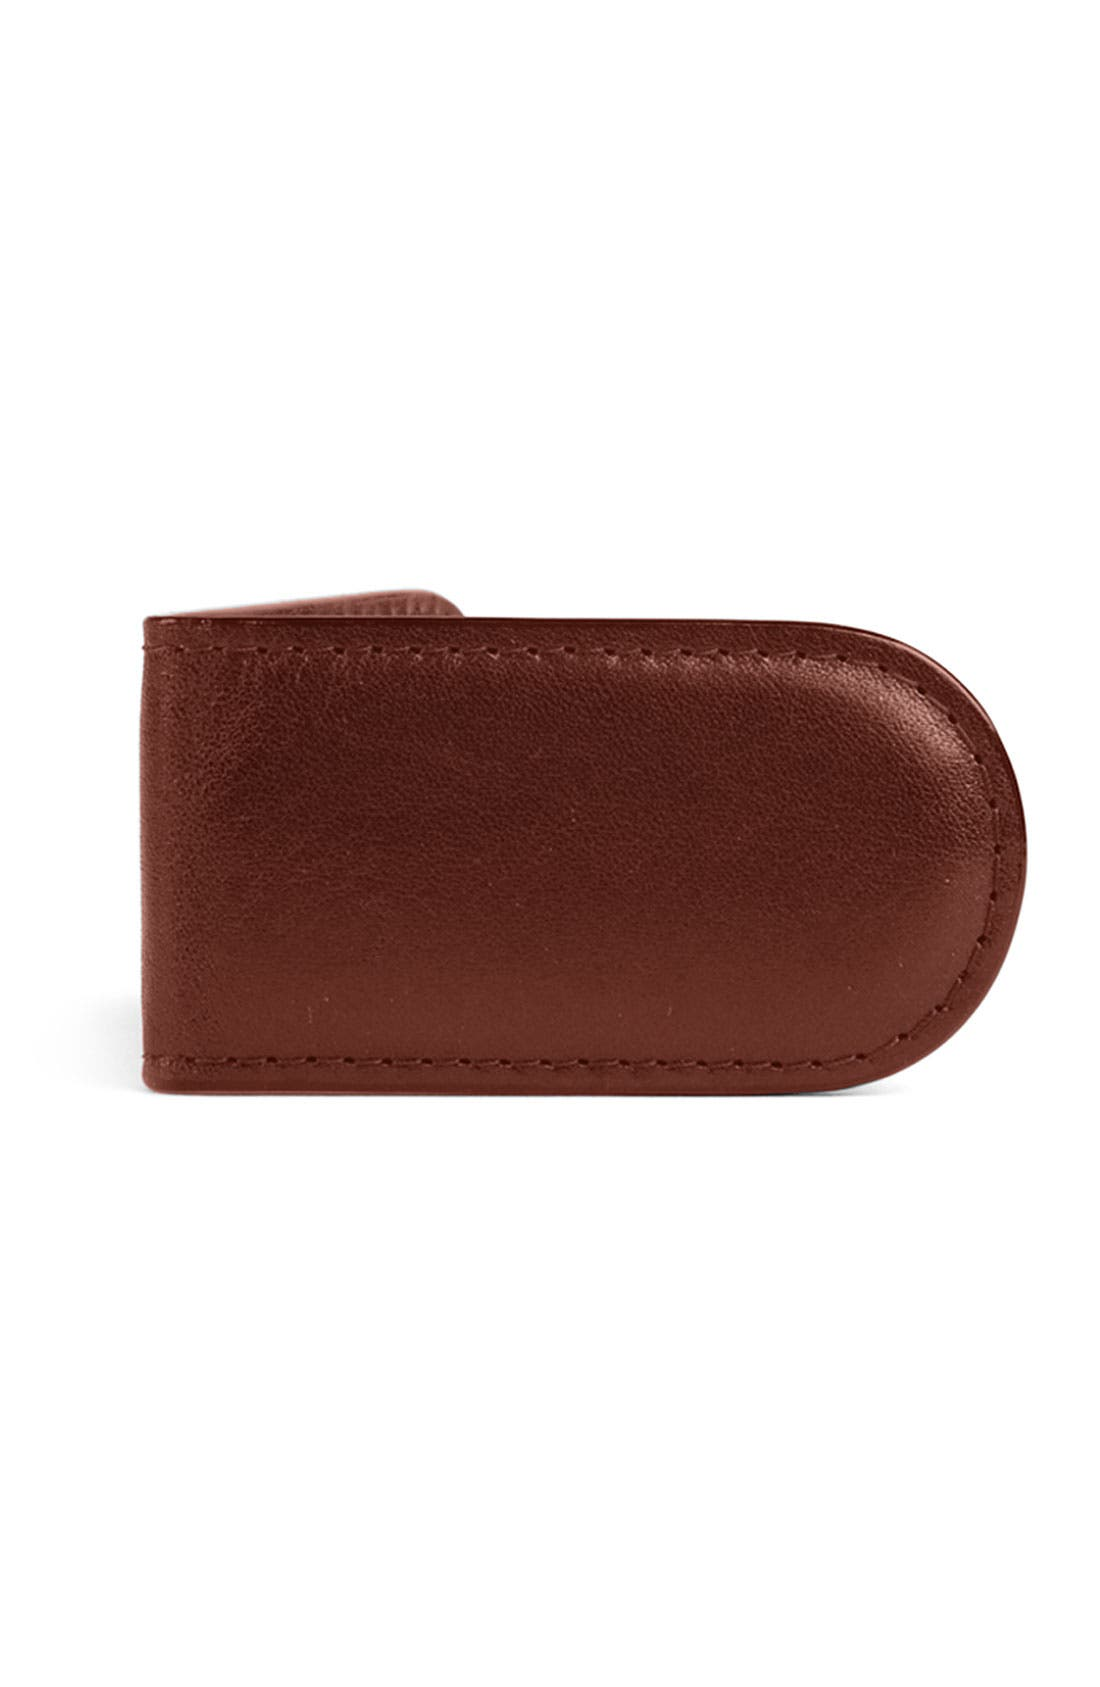 Main Image - Bosca Leather Money Clip